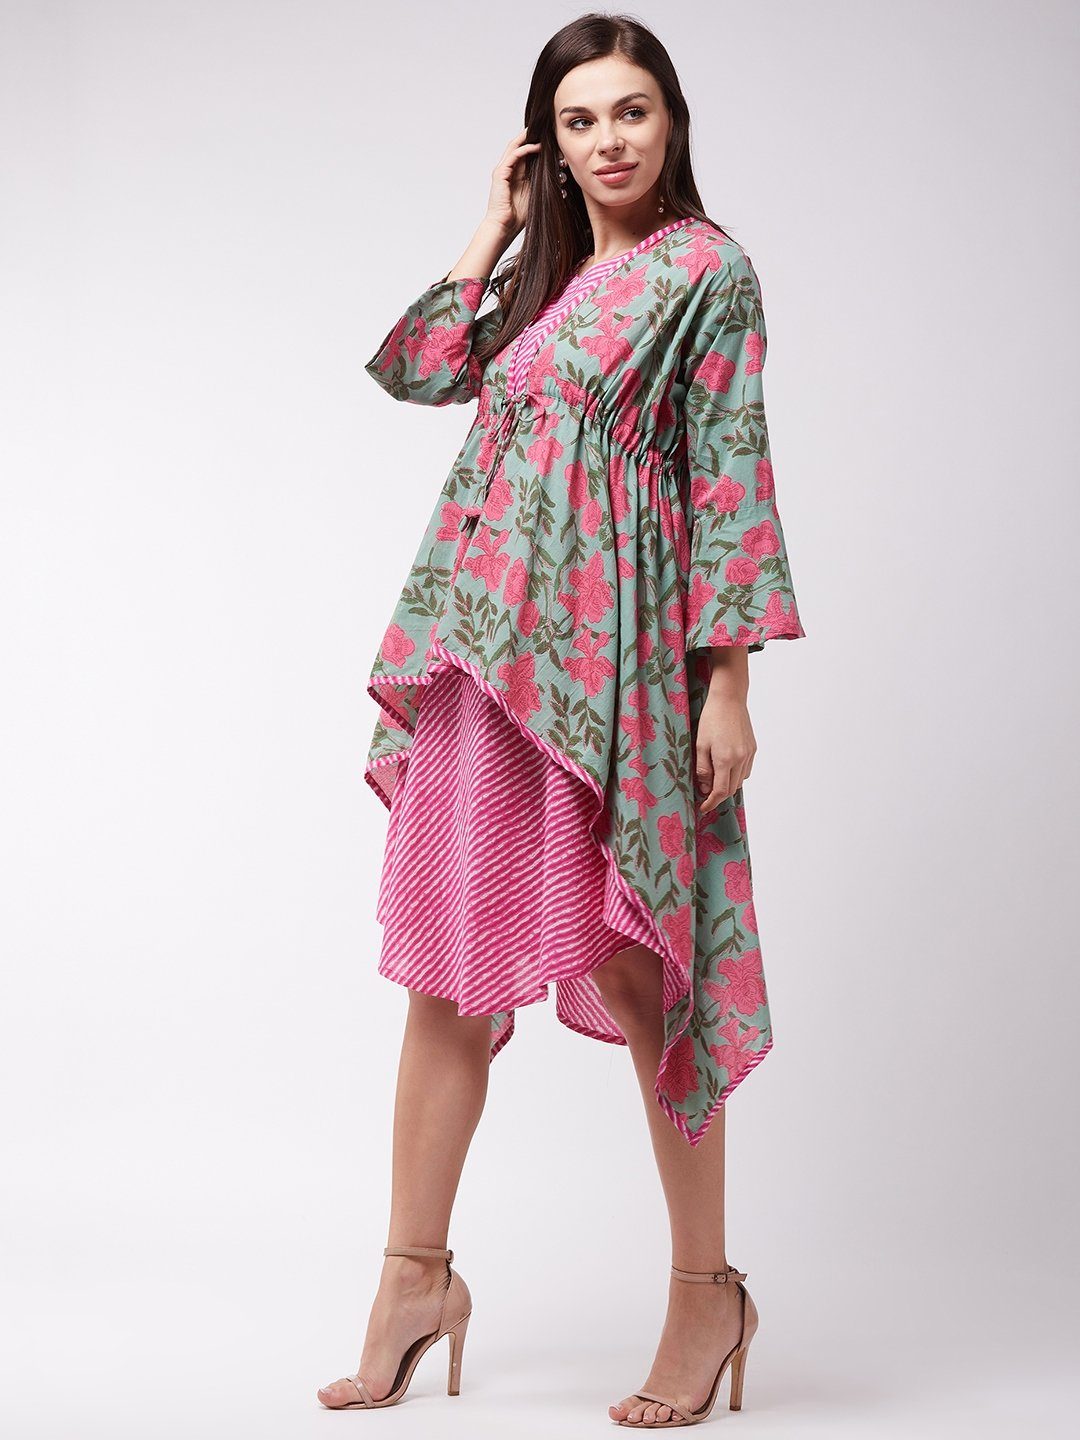 Green -Pink Floral Dress With Shrug